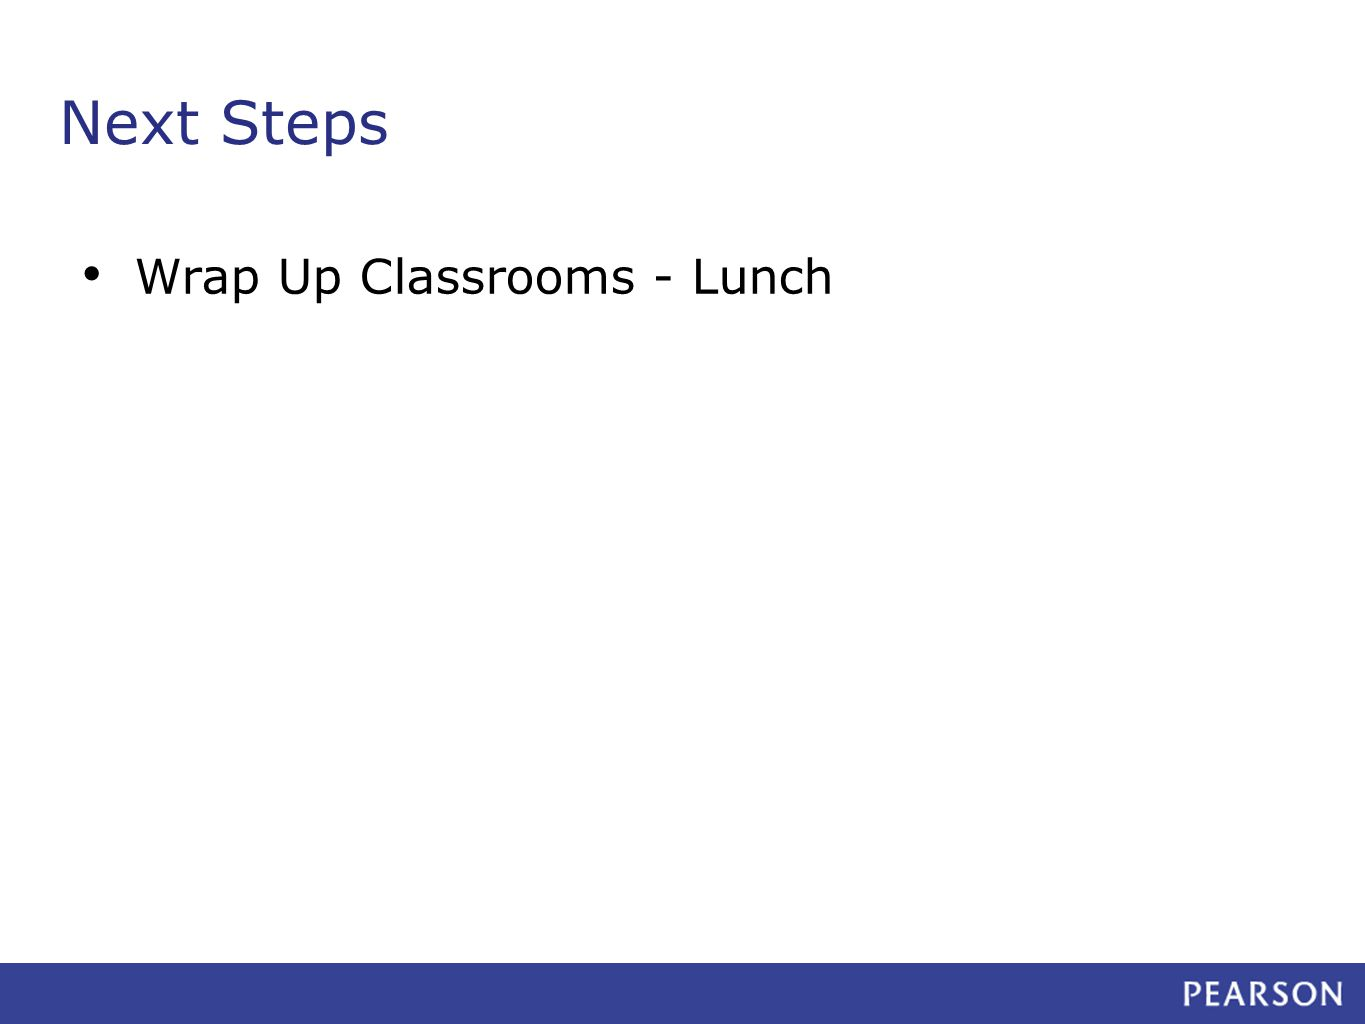 Next Steps Wrap Up Classrooms - Lunch